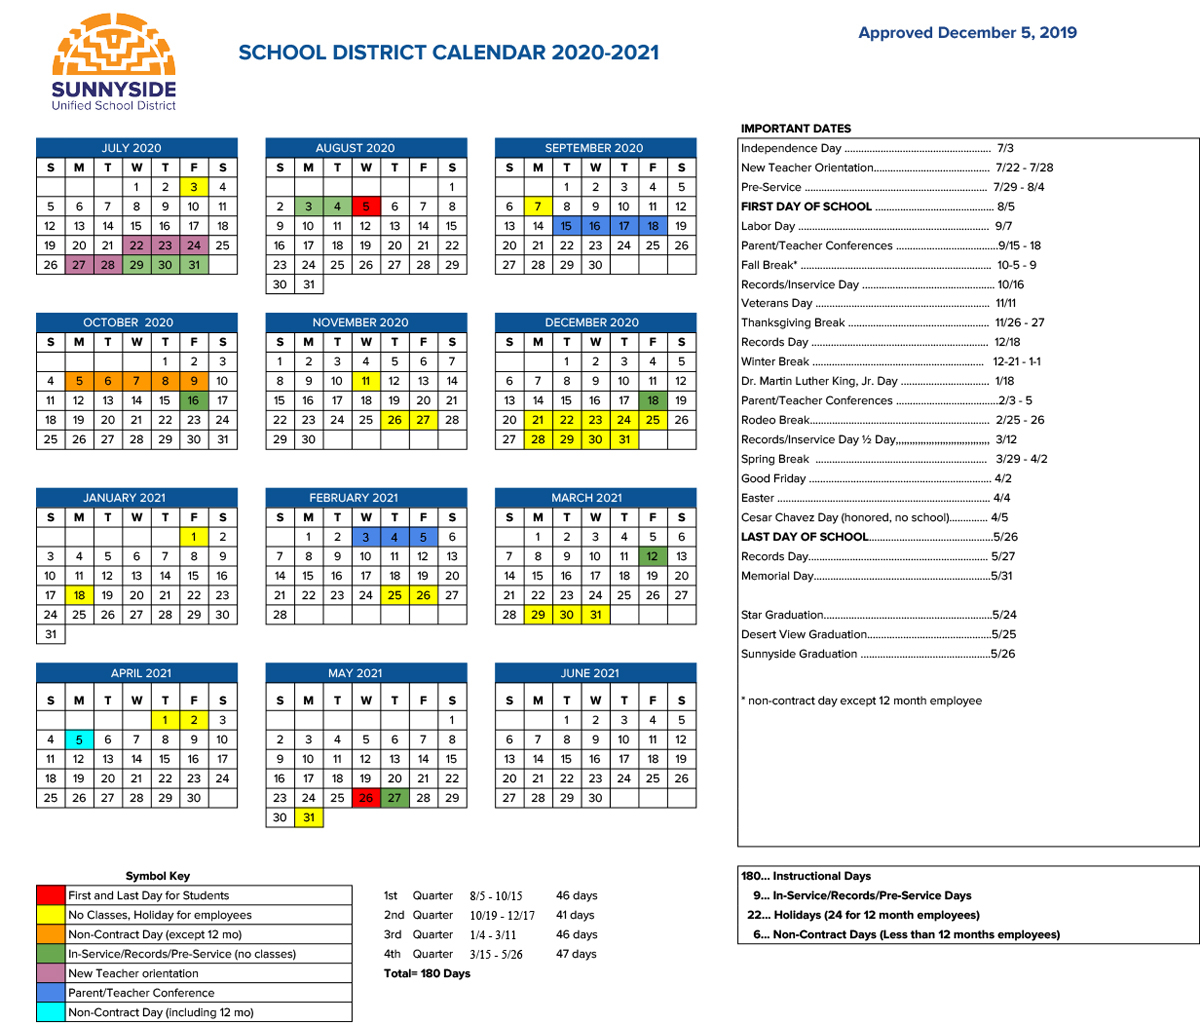 Academic Calendar | Sunnyside Unified School District Throughout Corona Norco Usd School Calendar 2021